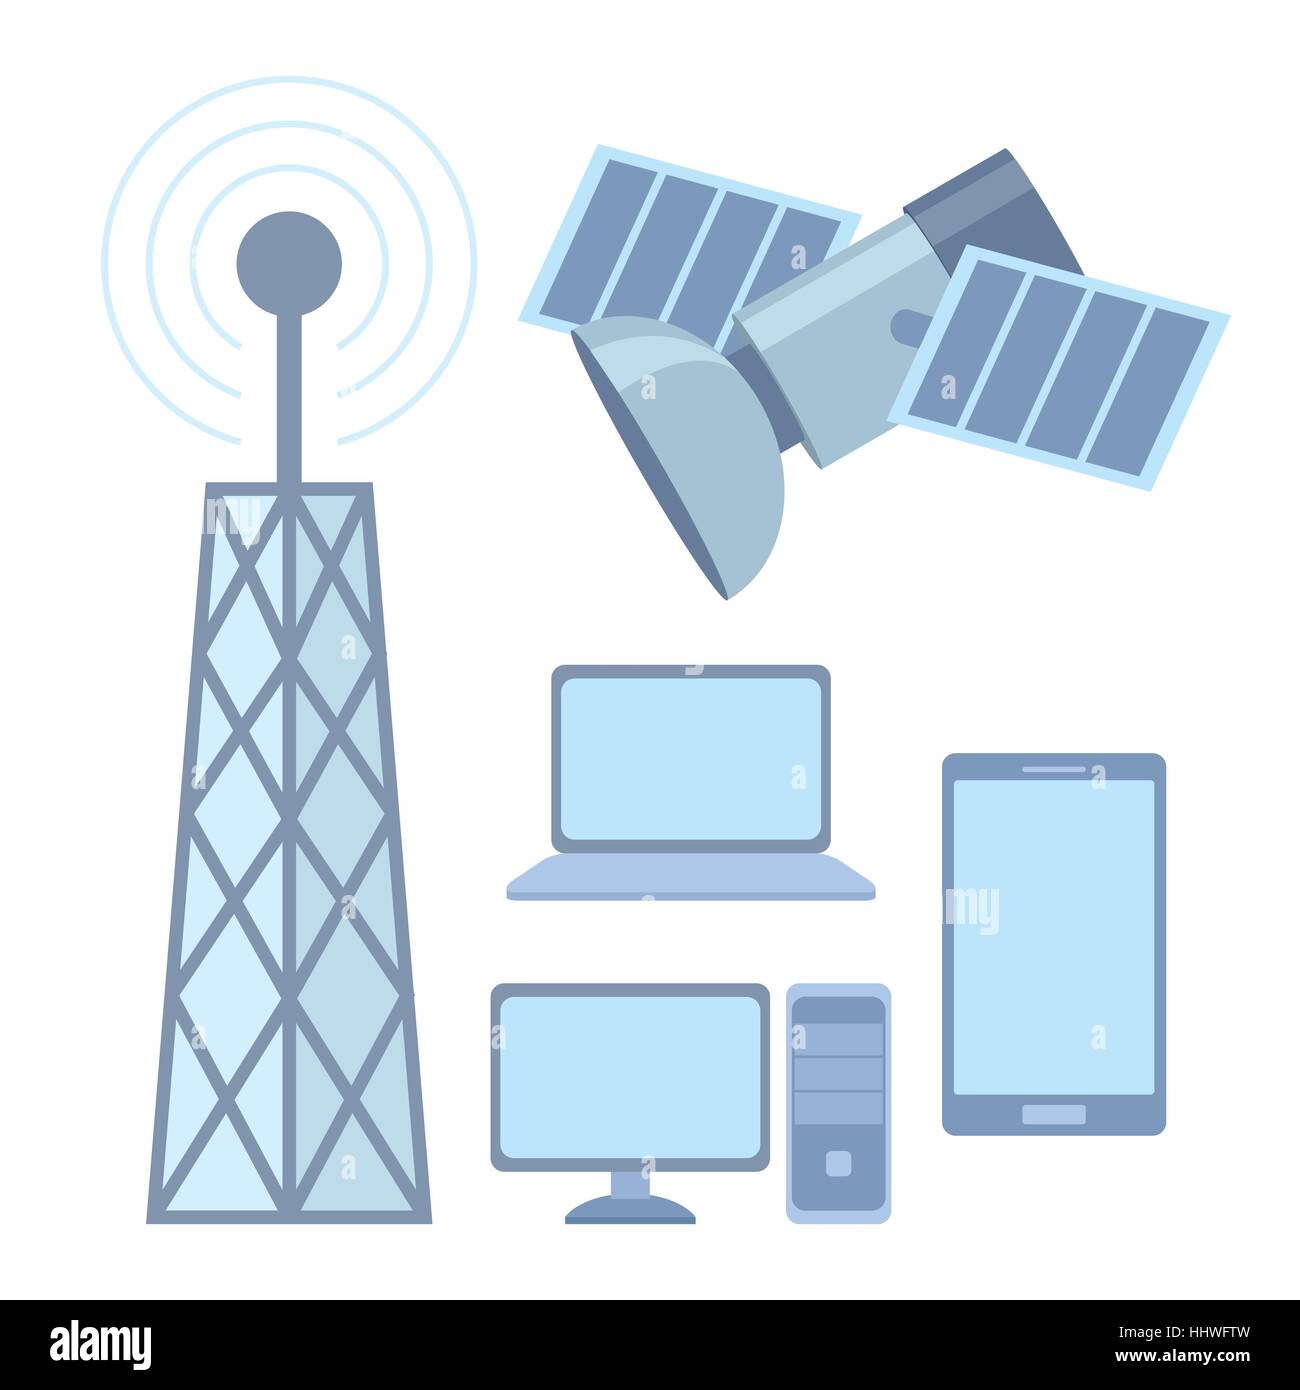 hight resolution of tellecomunication system satellite internet and phone vector illustration